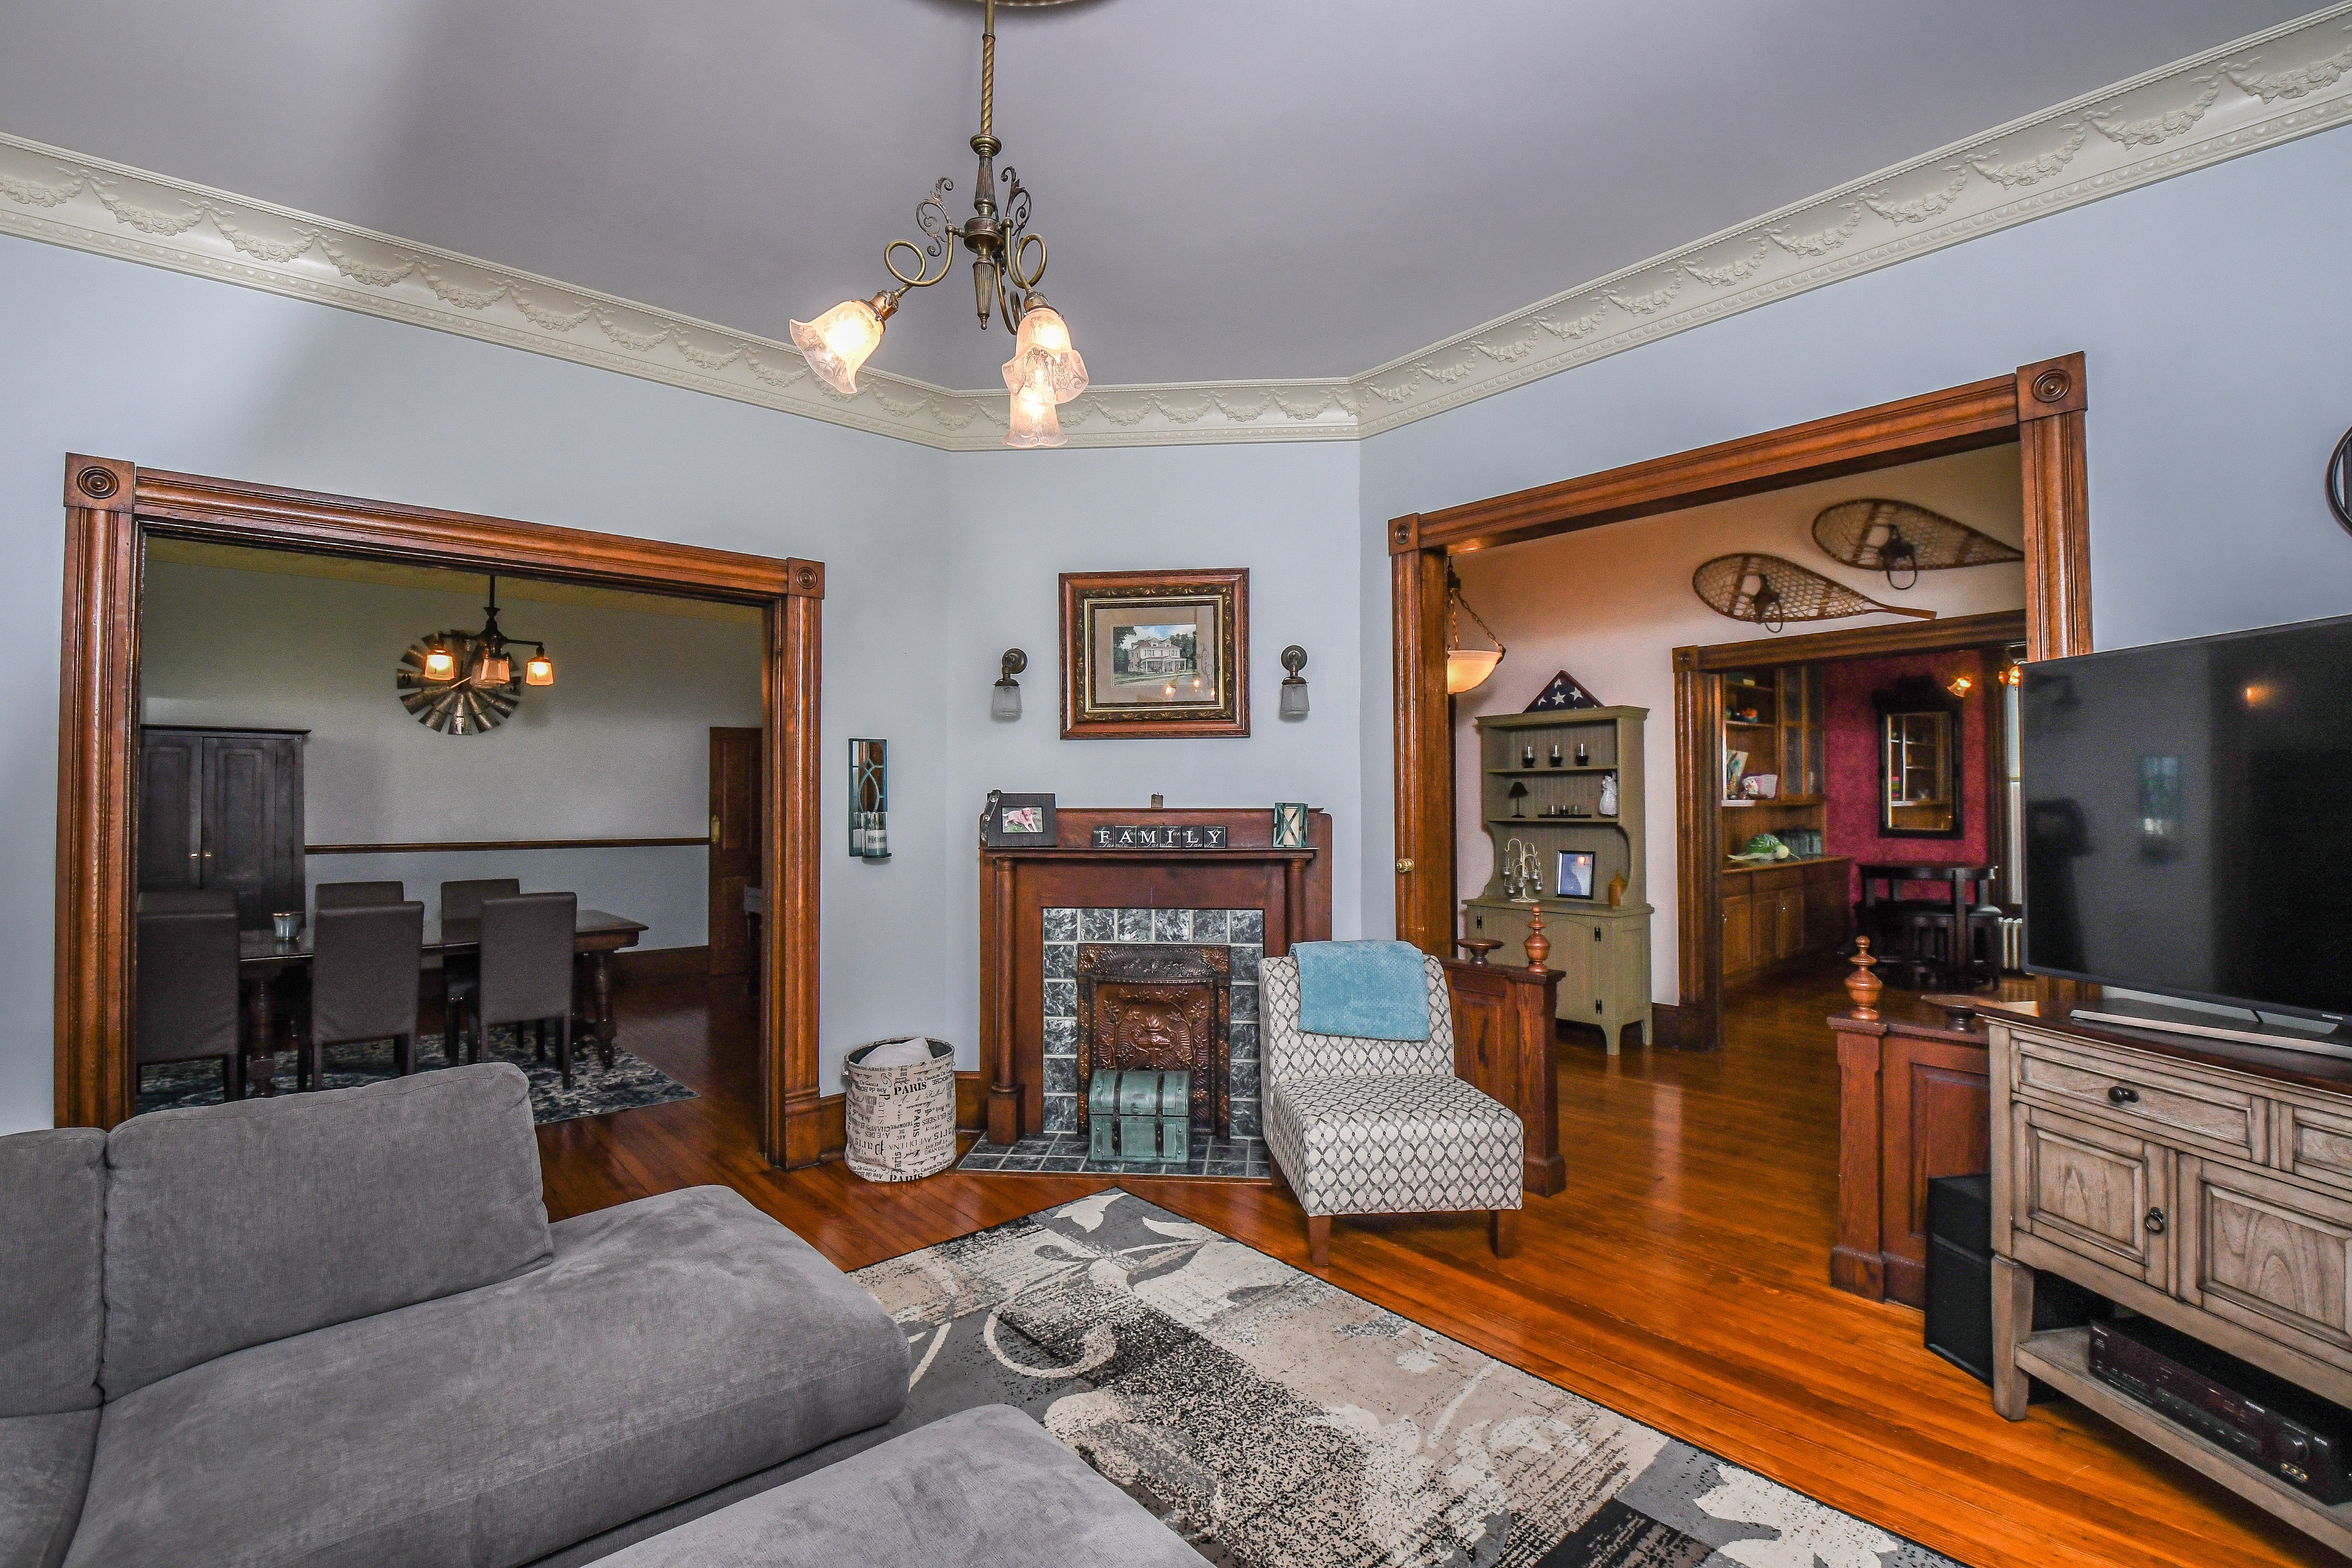 113 G Street - The Colonial